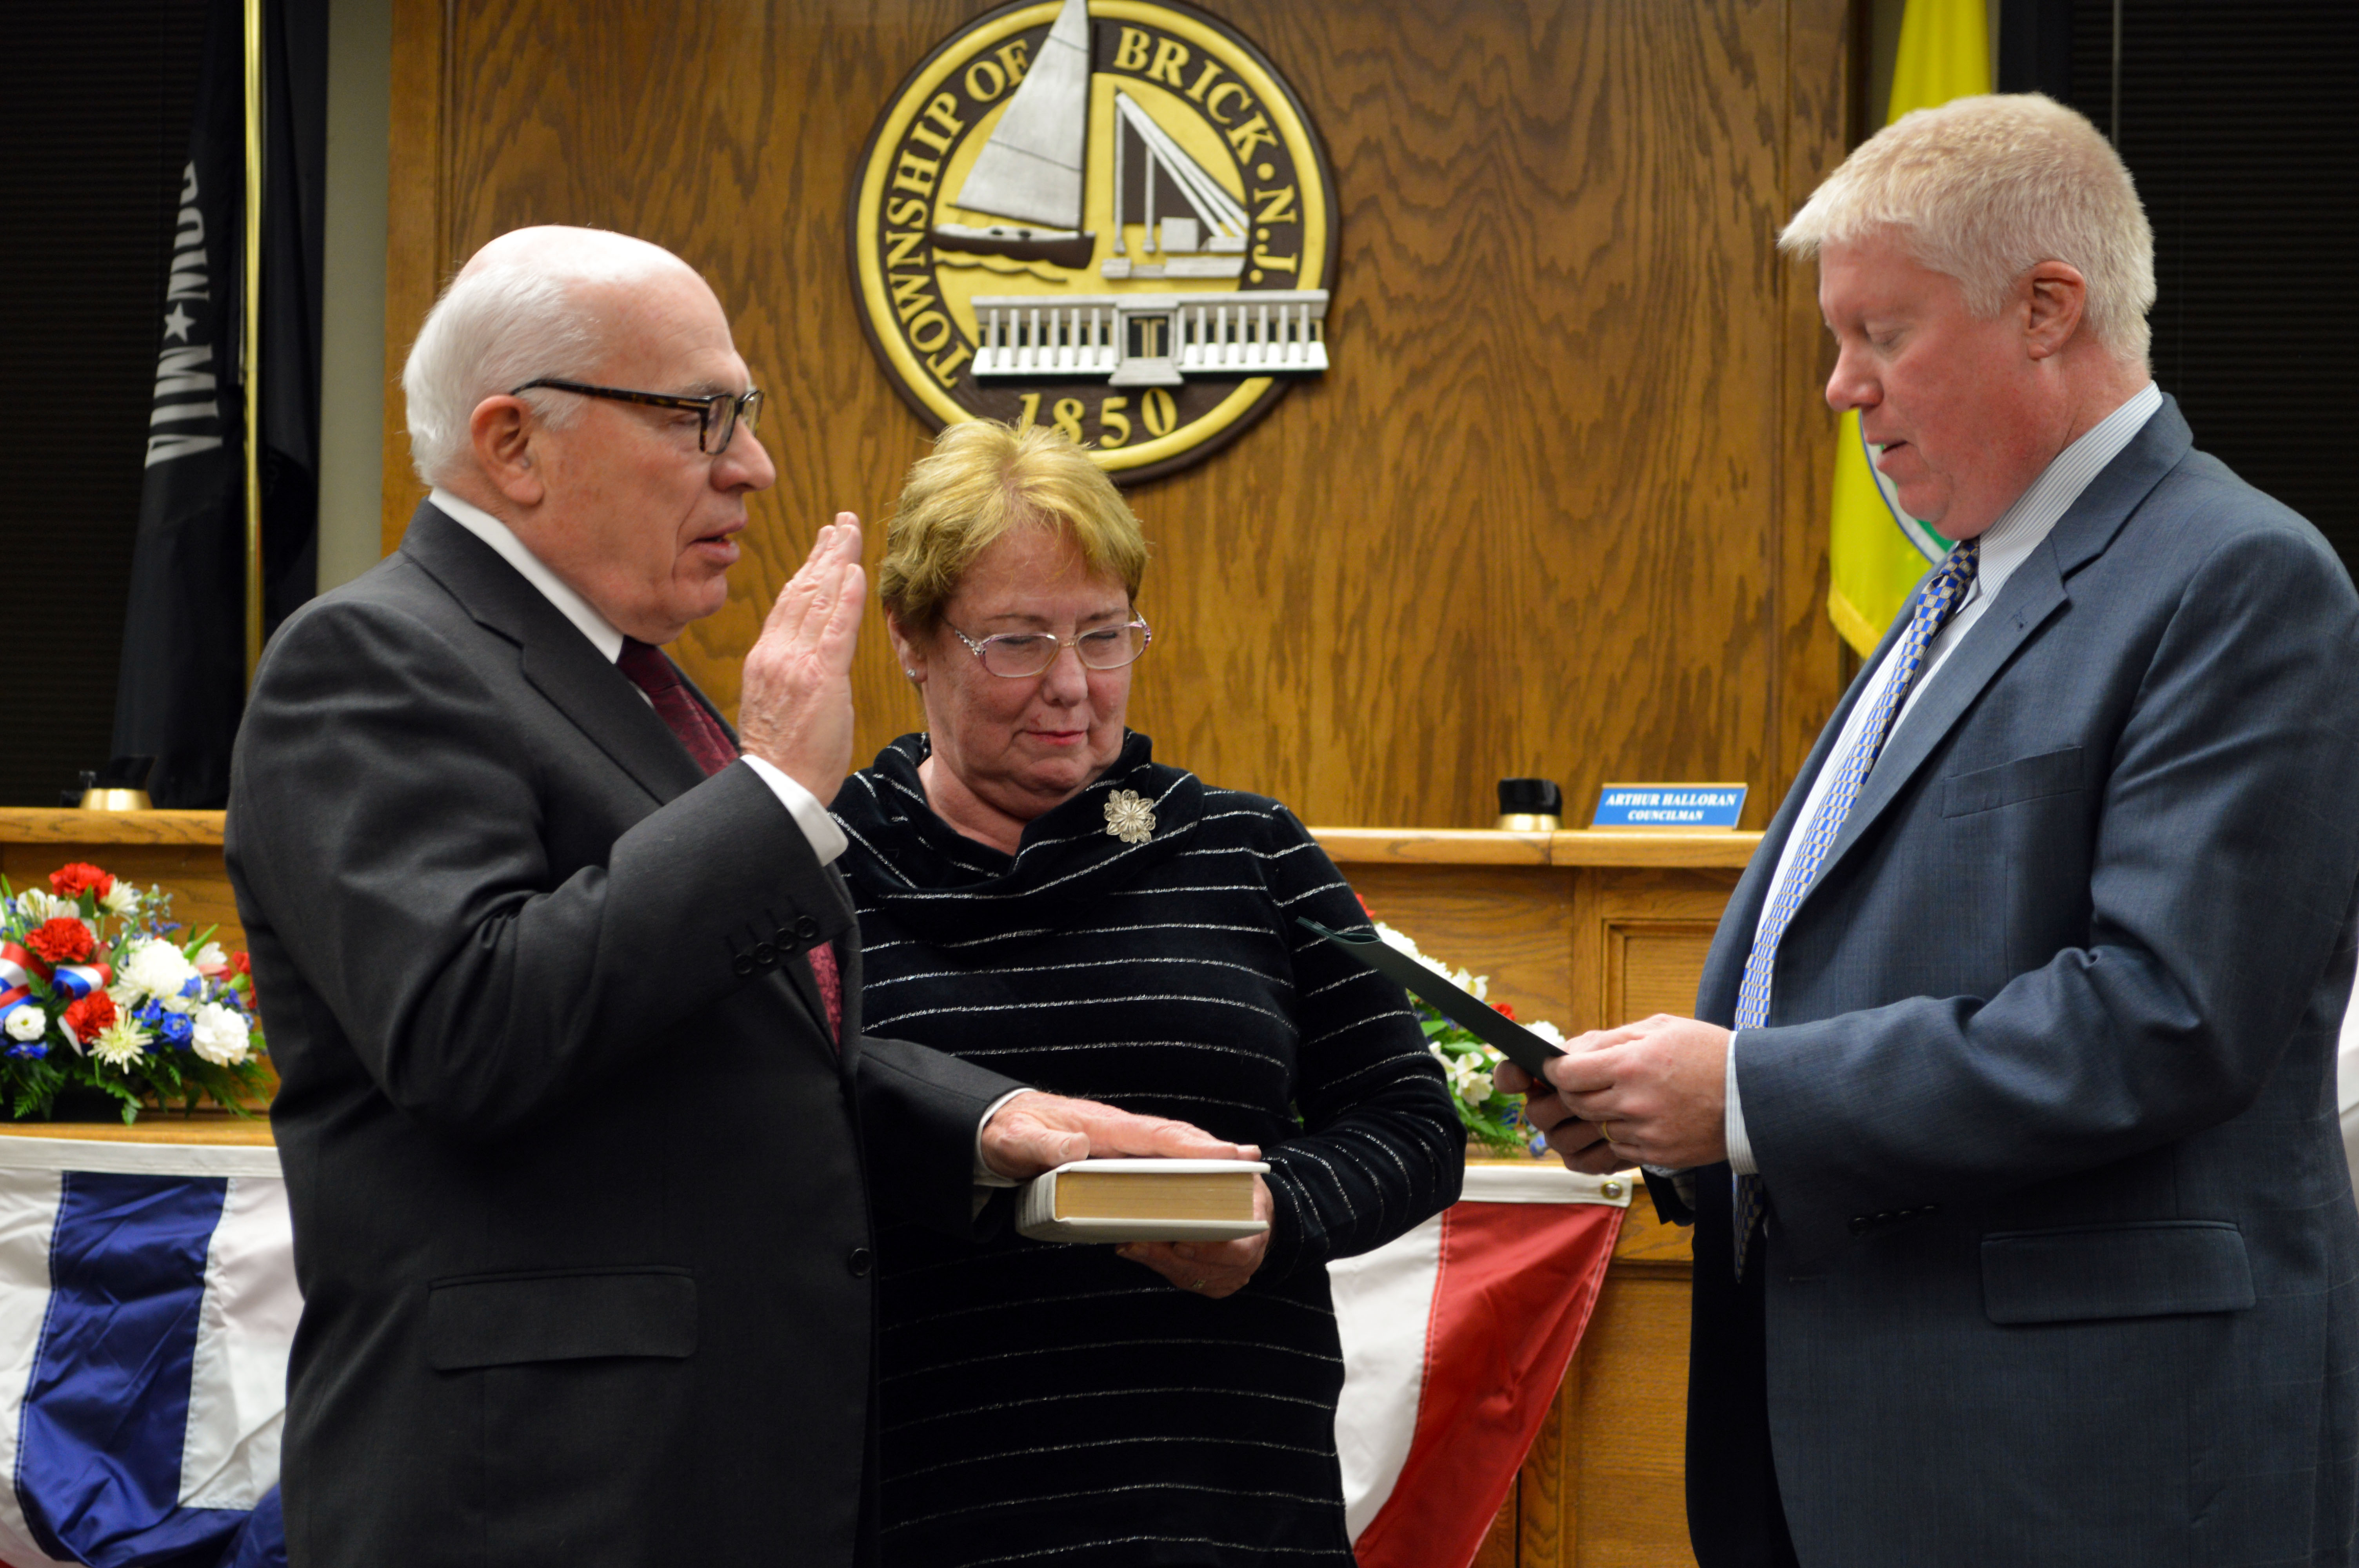 Art Halloran is sworn in as the Brick Township Council President, Jan. 10, 2017. (Photo: Daniel Nee)